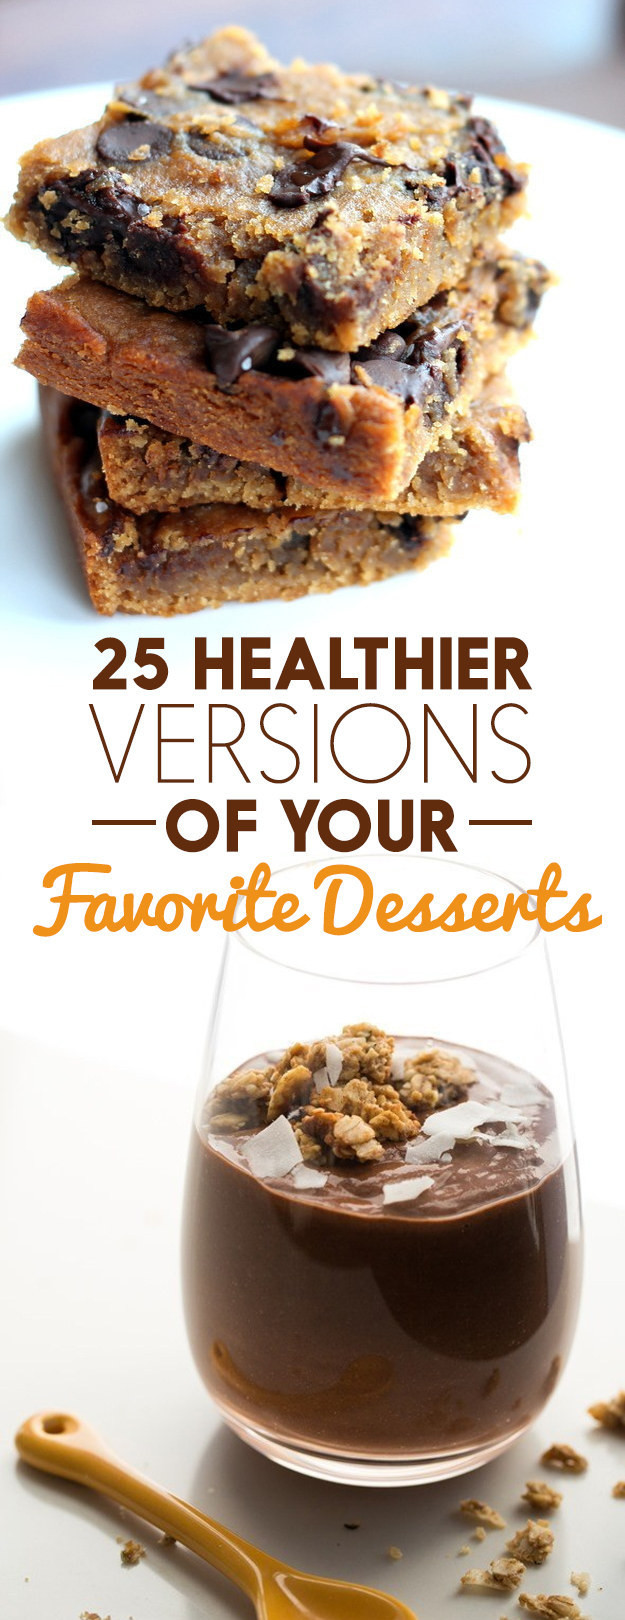 Healthy Desserts Buzzfeed  25 Healthier Versions Your Favorite Desserts